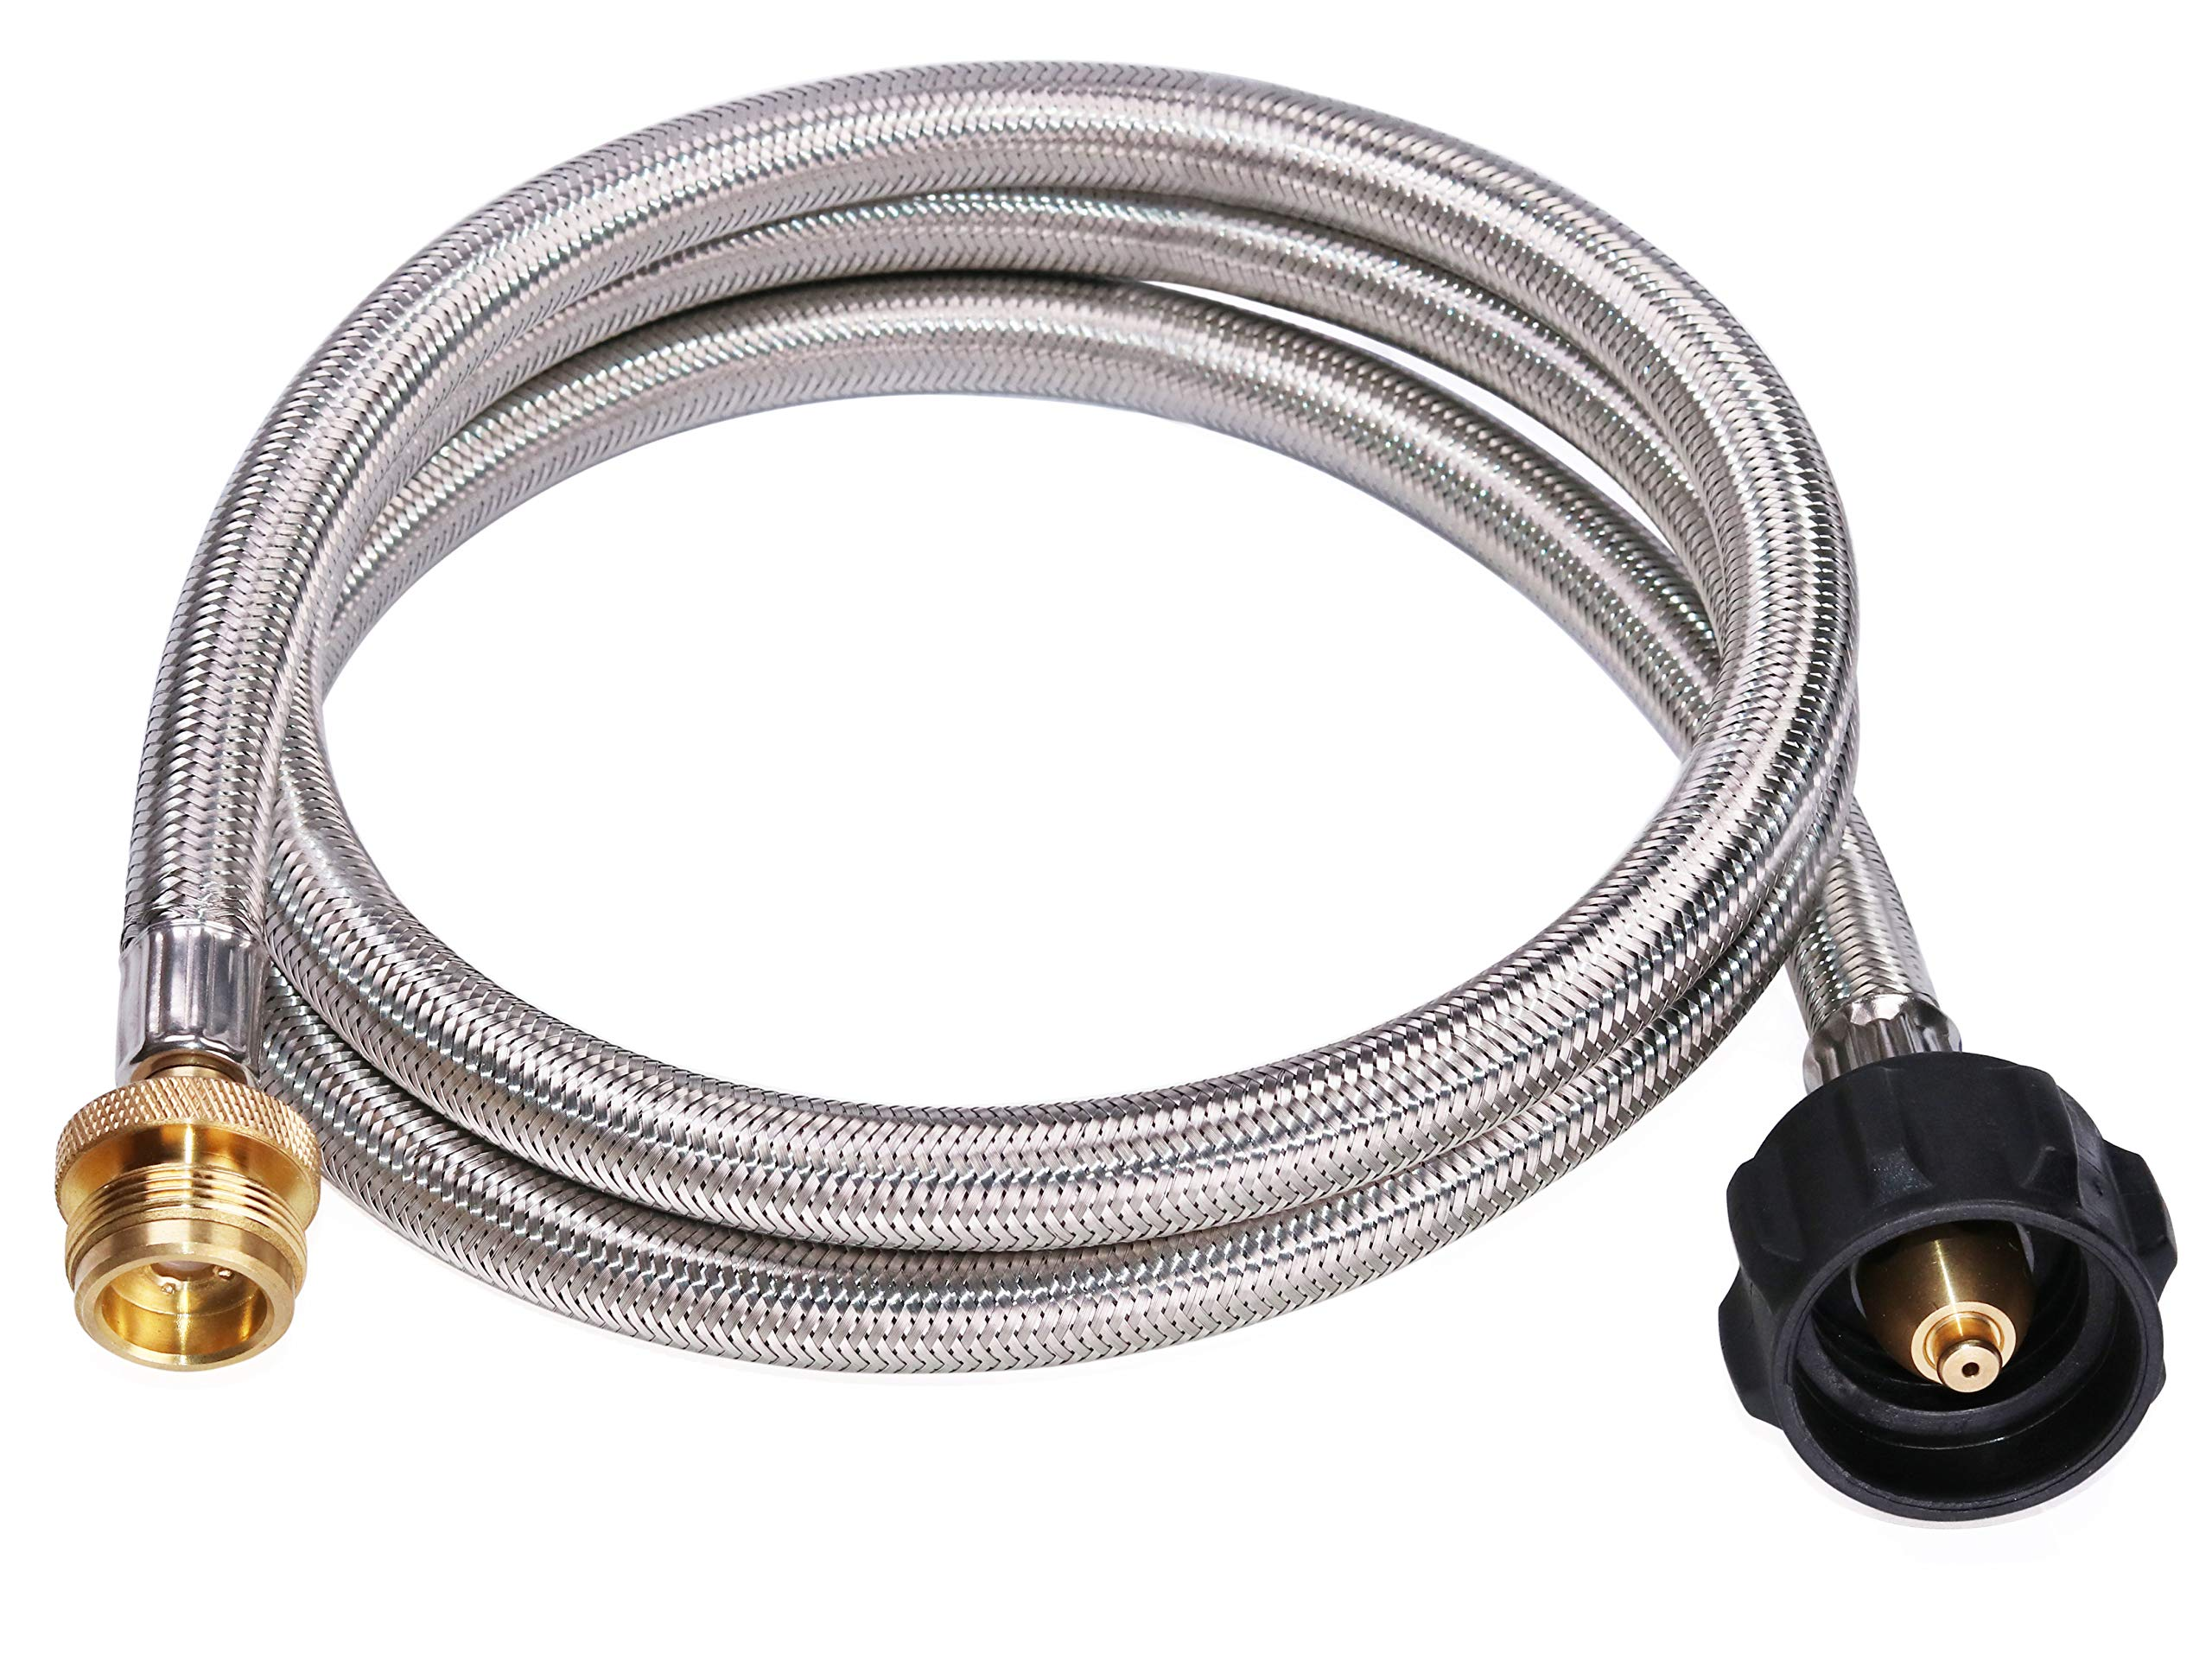 DozyAnt 5 Feet Stainless Steel Braided Propane Adapter Hose 1 lb to 20 lb Converter Replacement for QCC1 / Type1 Tank Connects 1 LB Bulk Portable Appliance to 20 lb Propane Tank - Safety Certified by DOZYANT